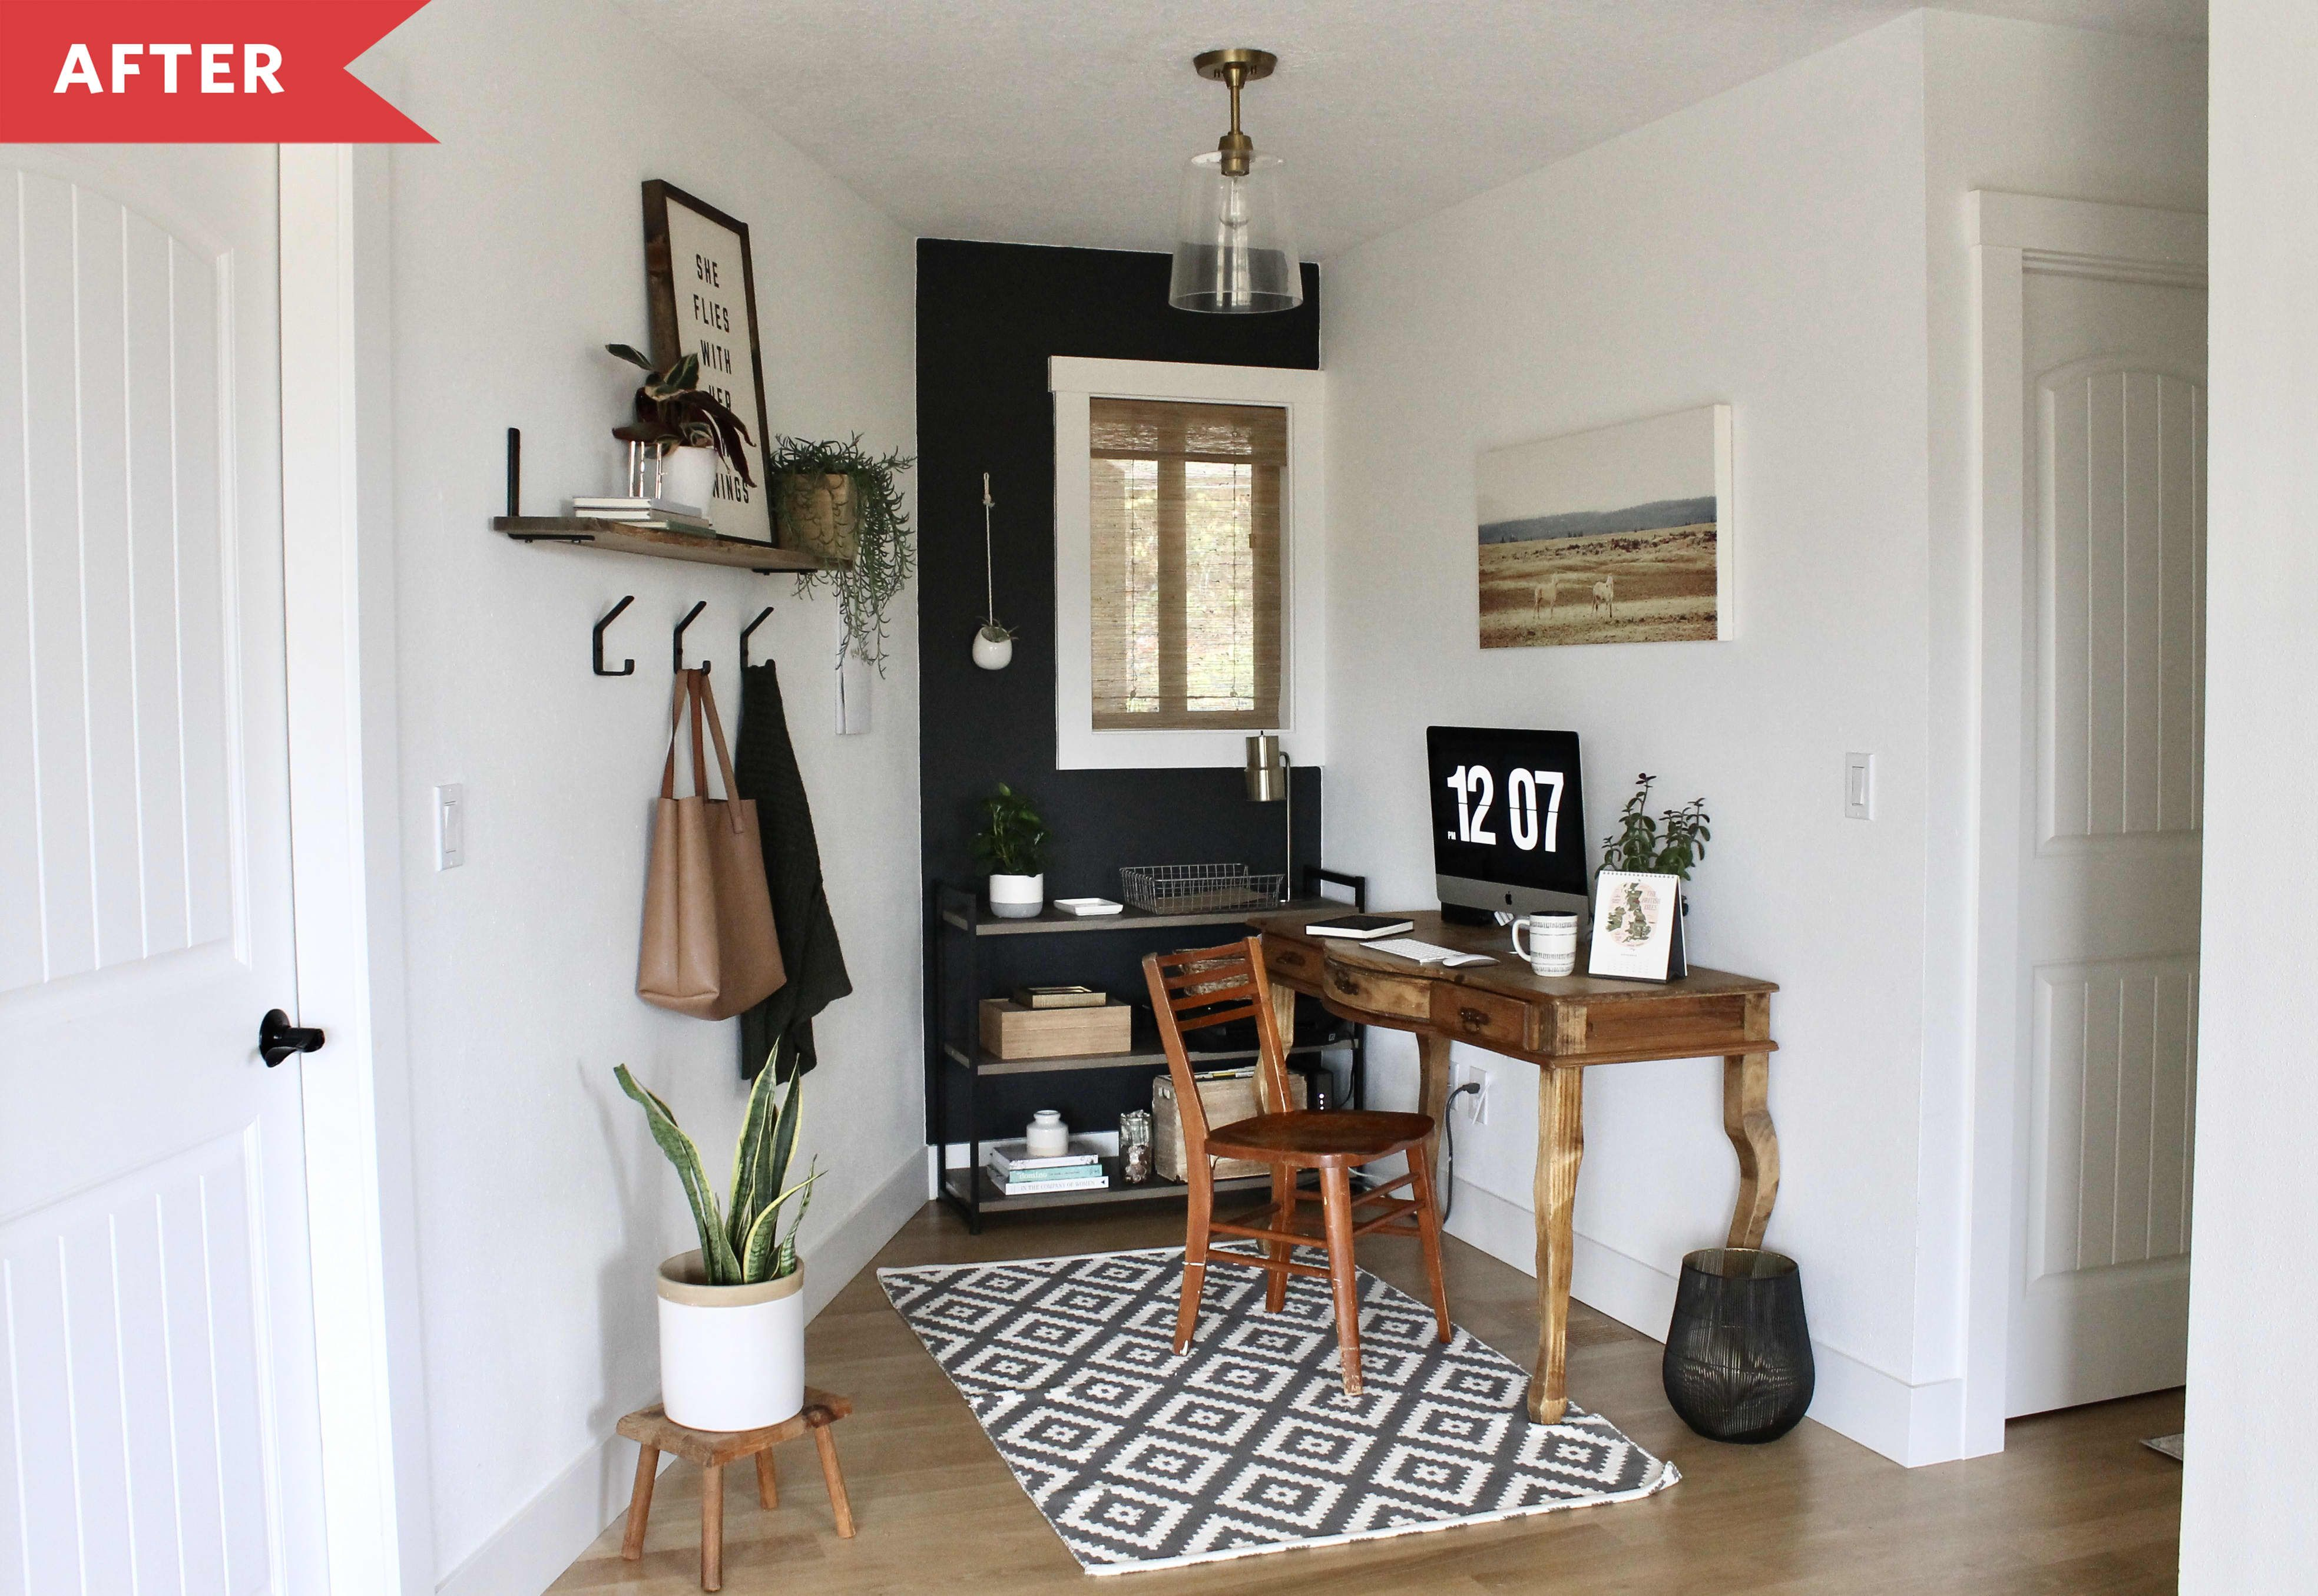 10 Of Our Favorite Home Office Redos To Inspire Your Work From Home Setup Home Office Home Office Design House And Home Magazine